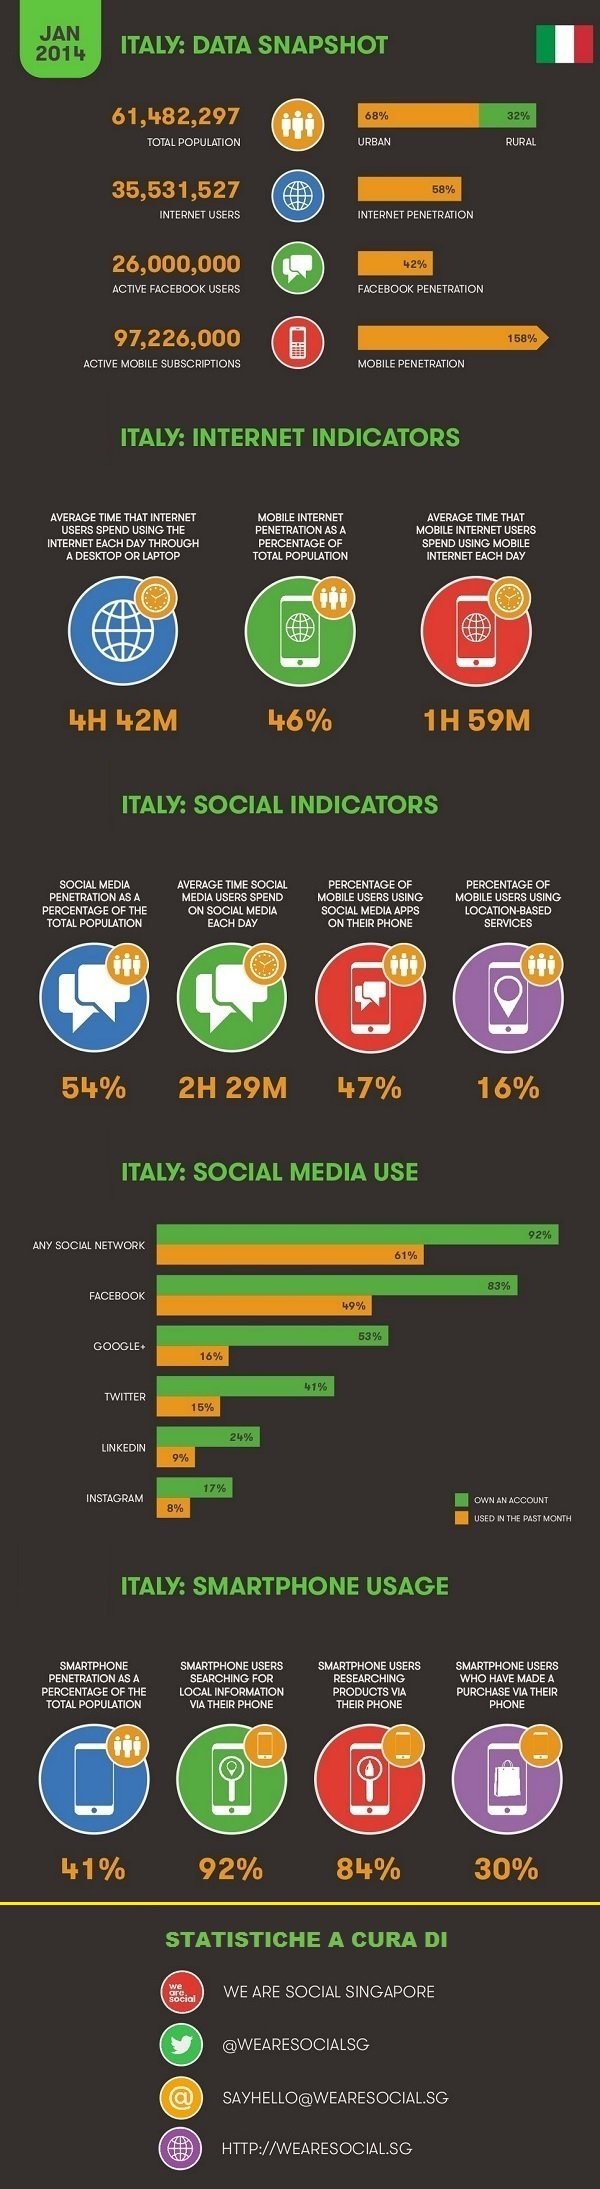 digital-global-trends-italia-infografica